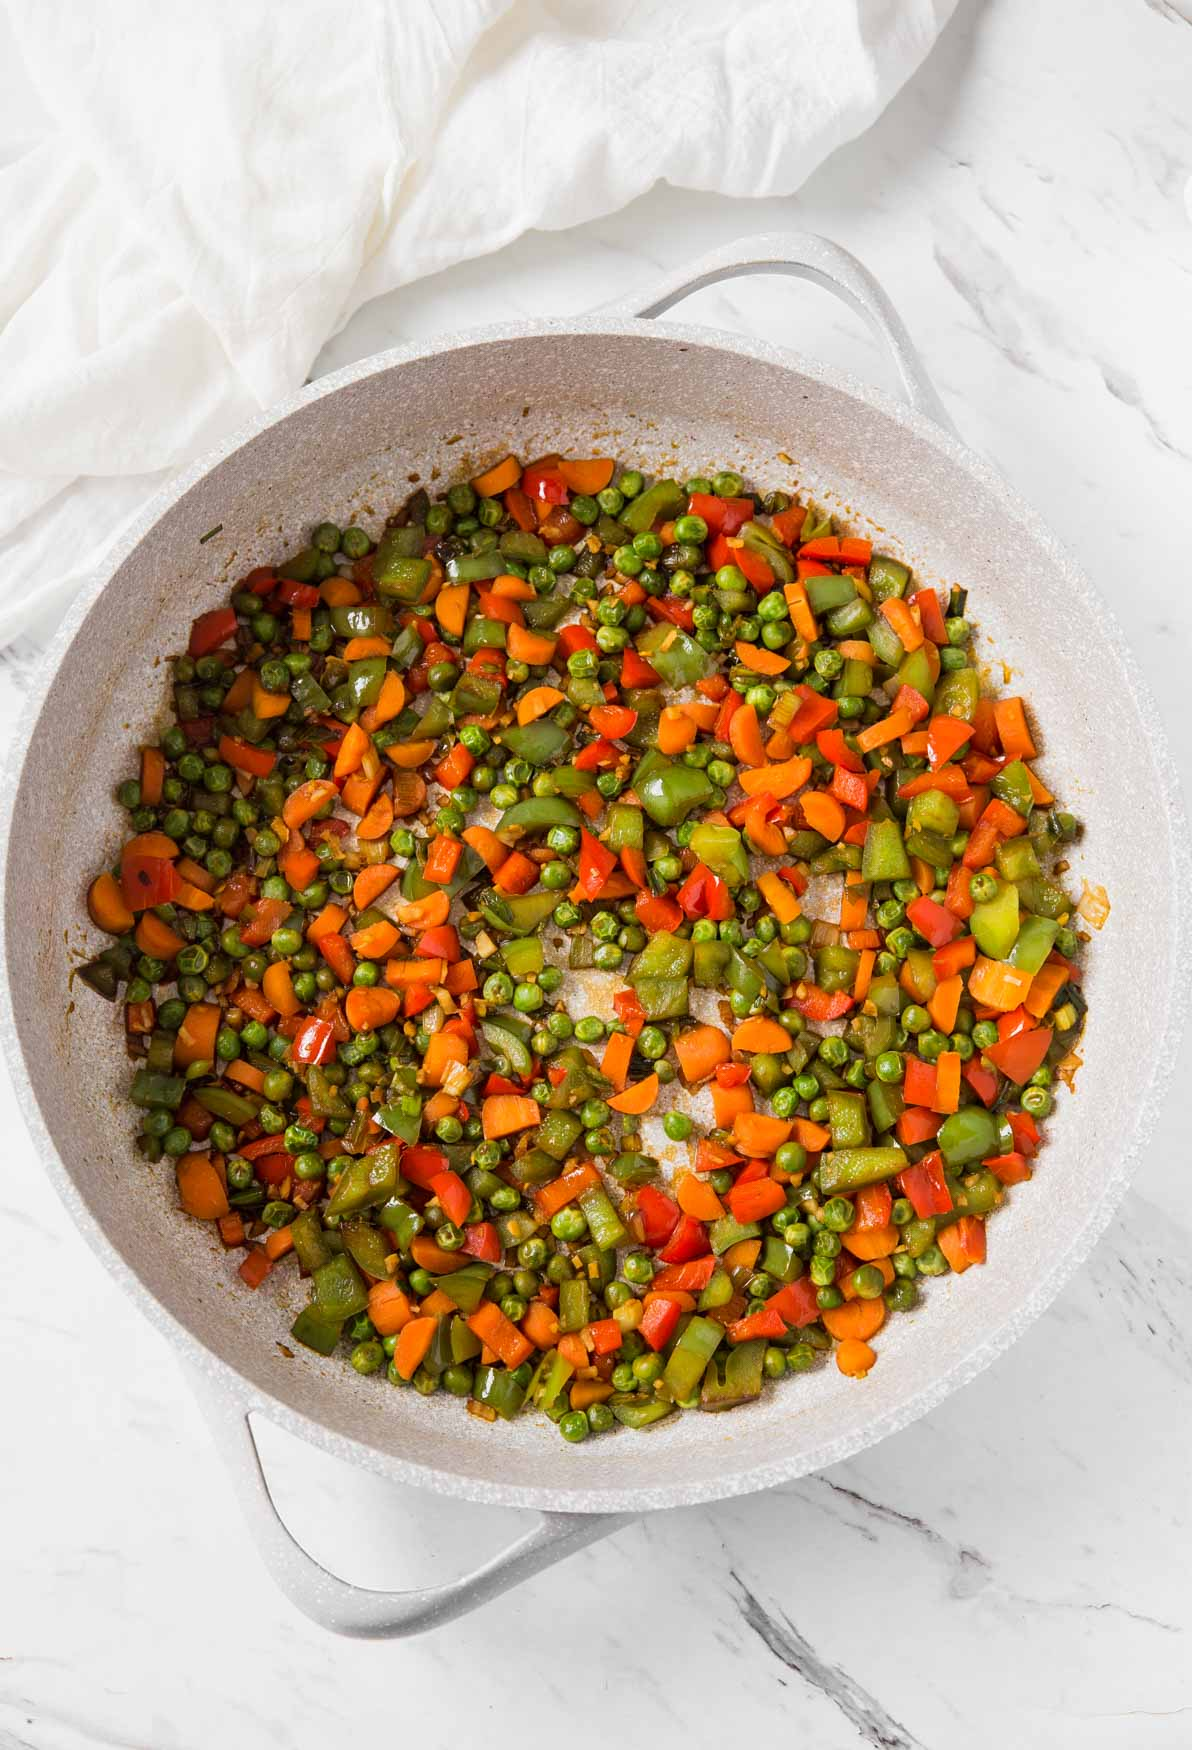 Stir-fried fresh vegetables in a large skillet for making vegetable healthy fried brown rice